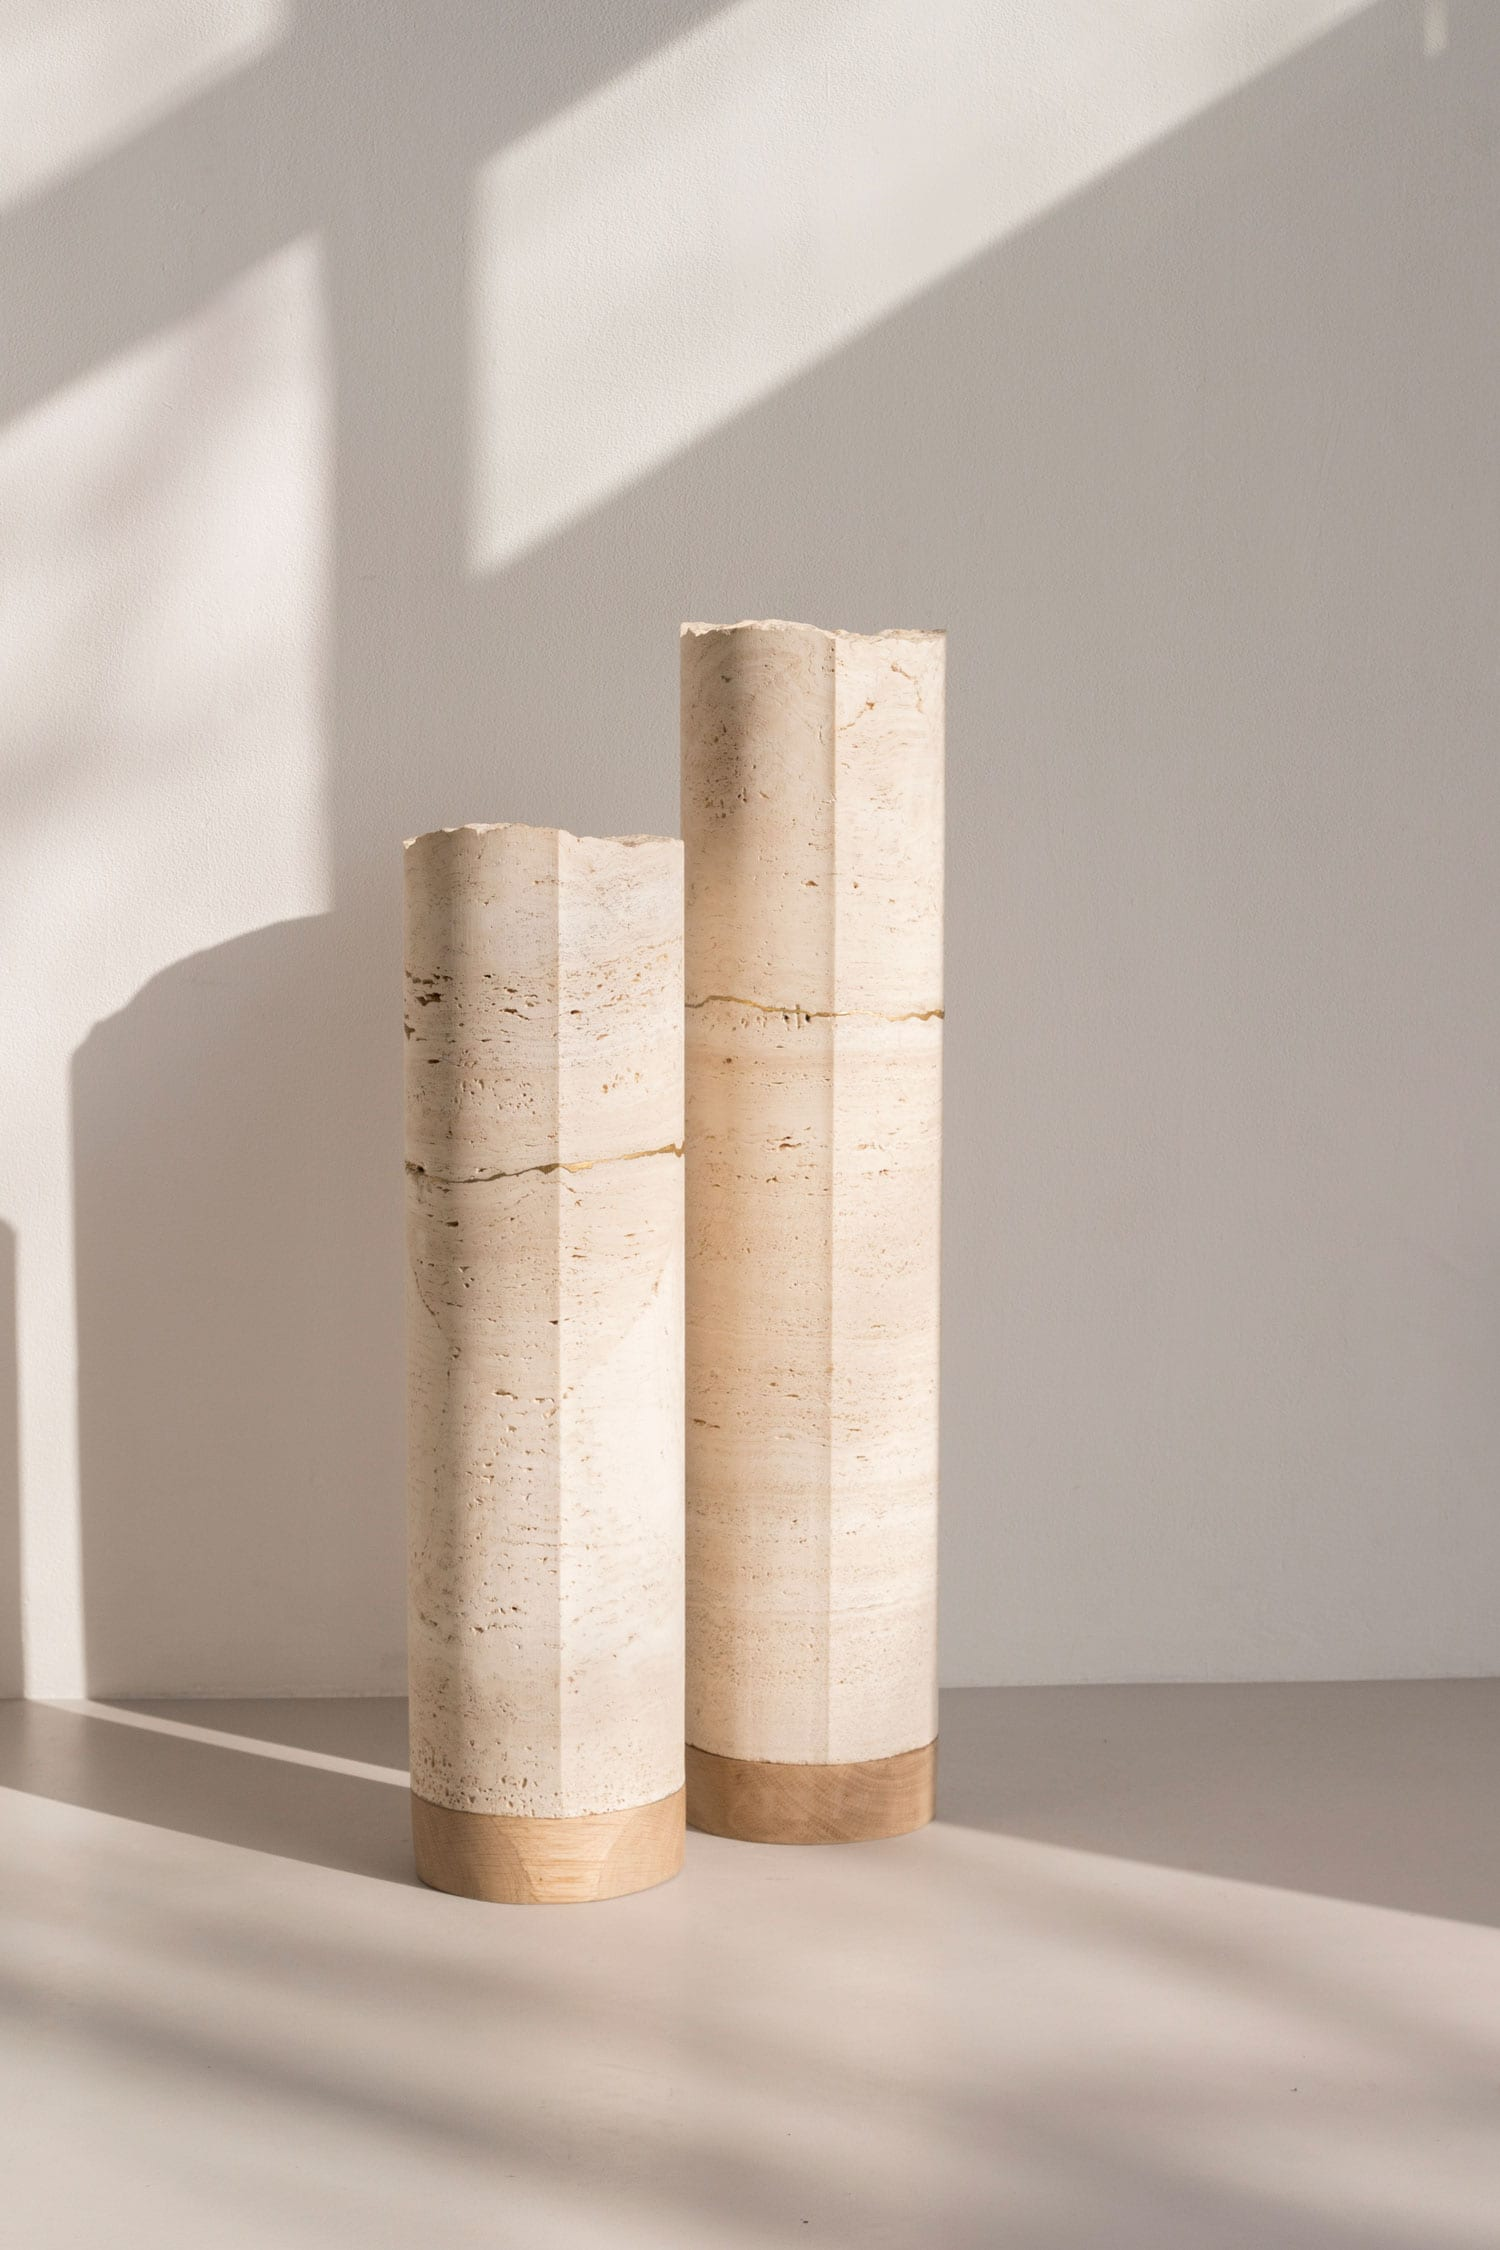 Carla Cascales Alimbau's 'Closer Than They Appear' Geometric Sculptures | Yellowtrace